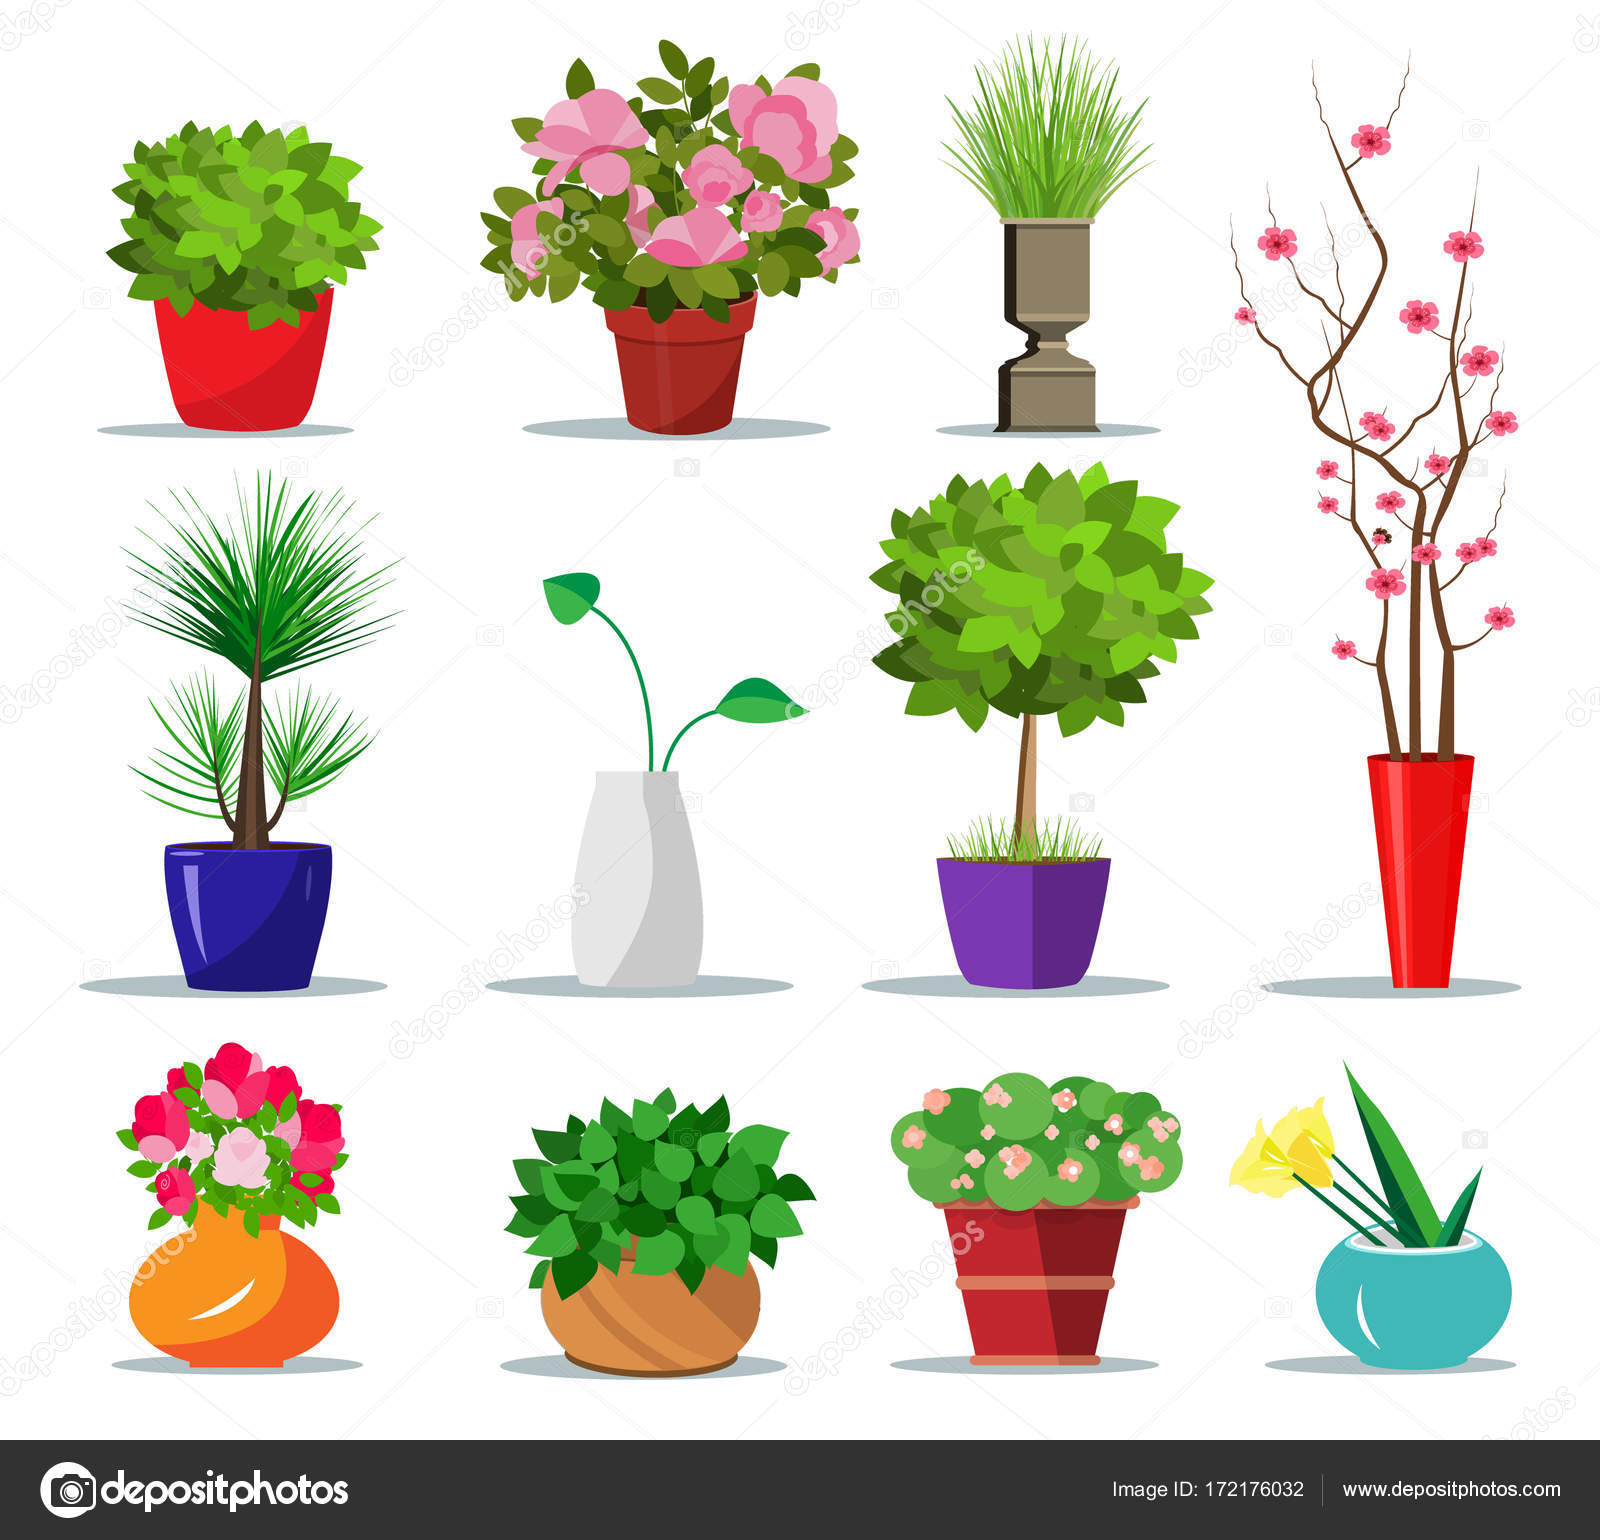 Set Of Colorful Flowerpots For House. Flat Style Indoor Pots For Plants And  Flowers. Vector Illustration Isolated. Collection Of Modern Flower Pots And  ...